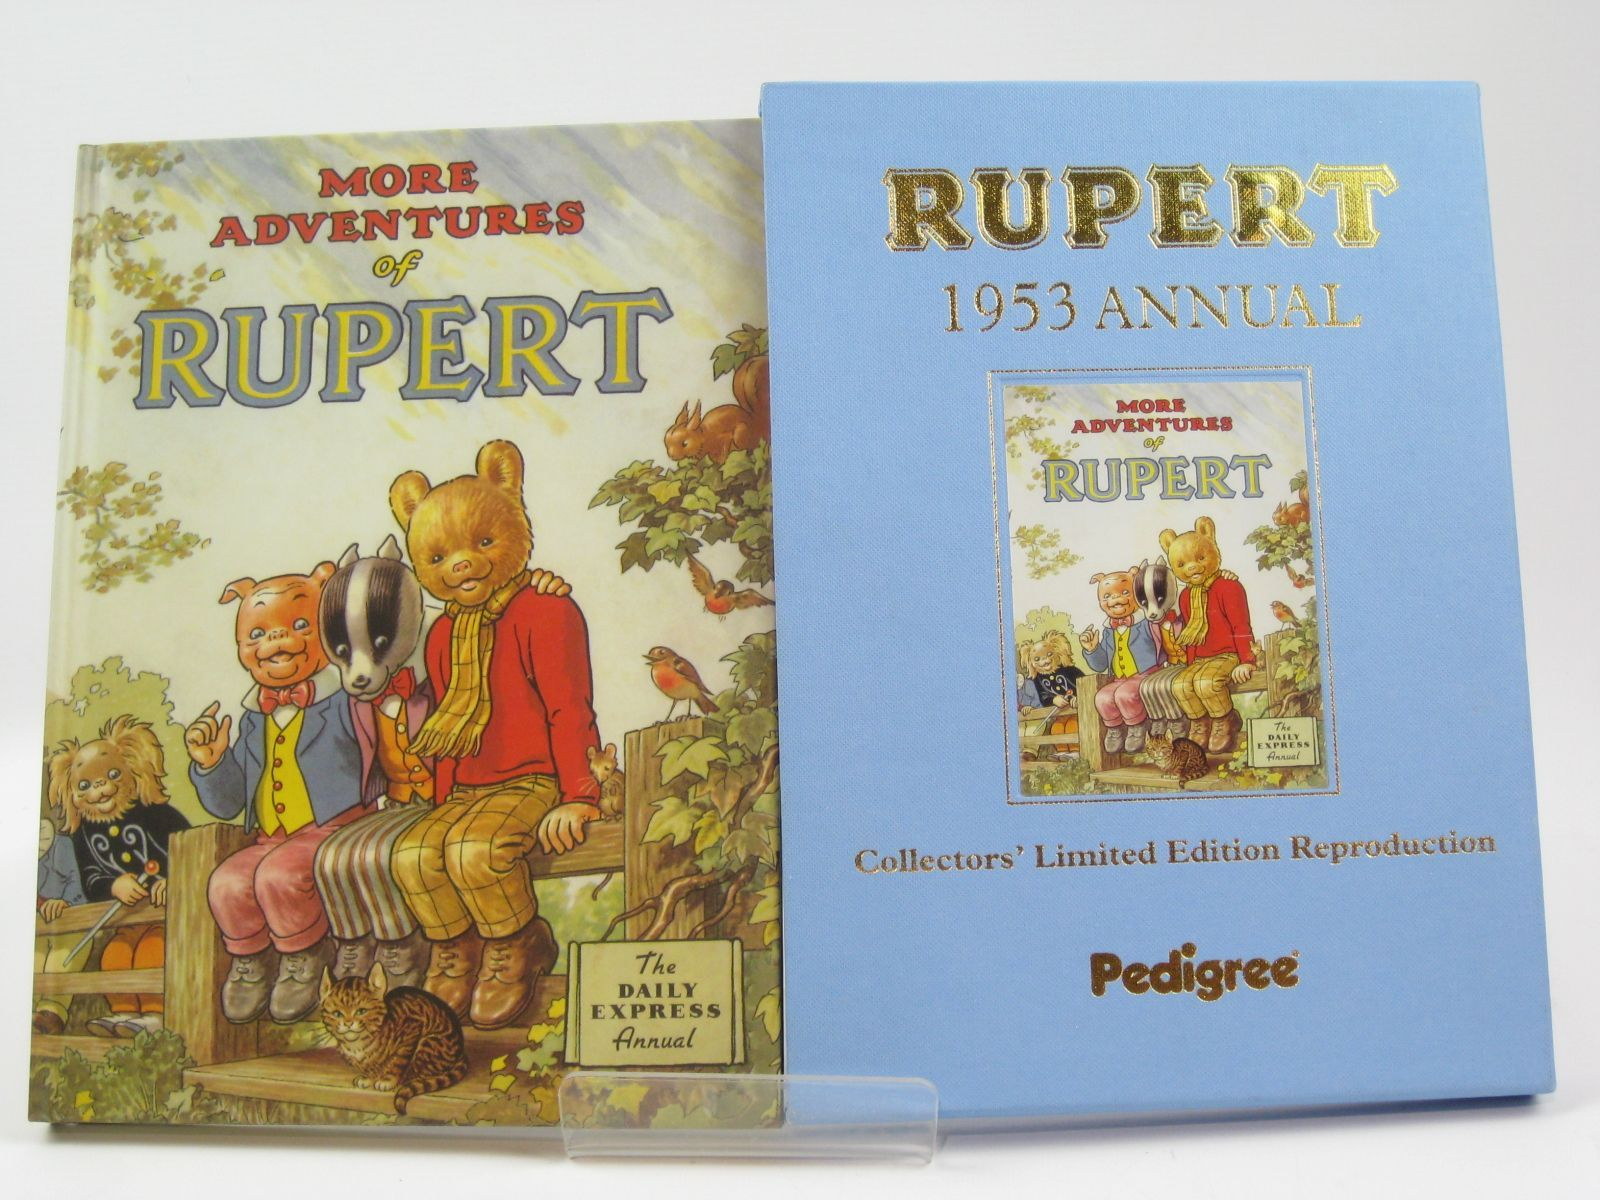 Photo of RUPERT ANNUAL 1953 (FACSIMILE) - MORE ADVENTURES OF RUPERT written by Bestall, Alfred illustrated by Bestall, Alfred published by Pedigree Books Limited (STOCK CODE: 1406223)  for sale by Stella & Rose's Books